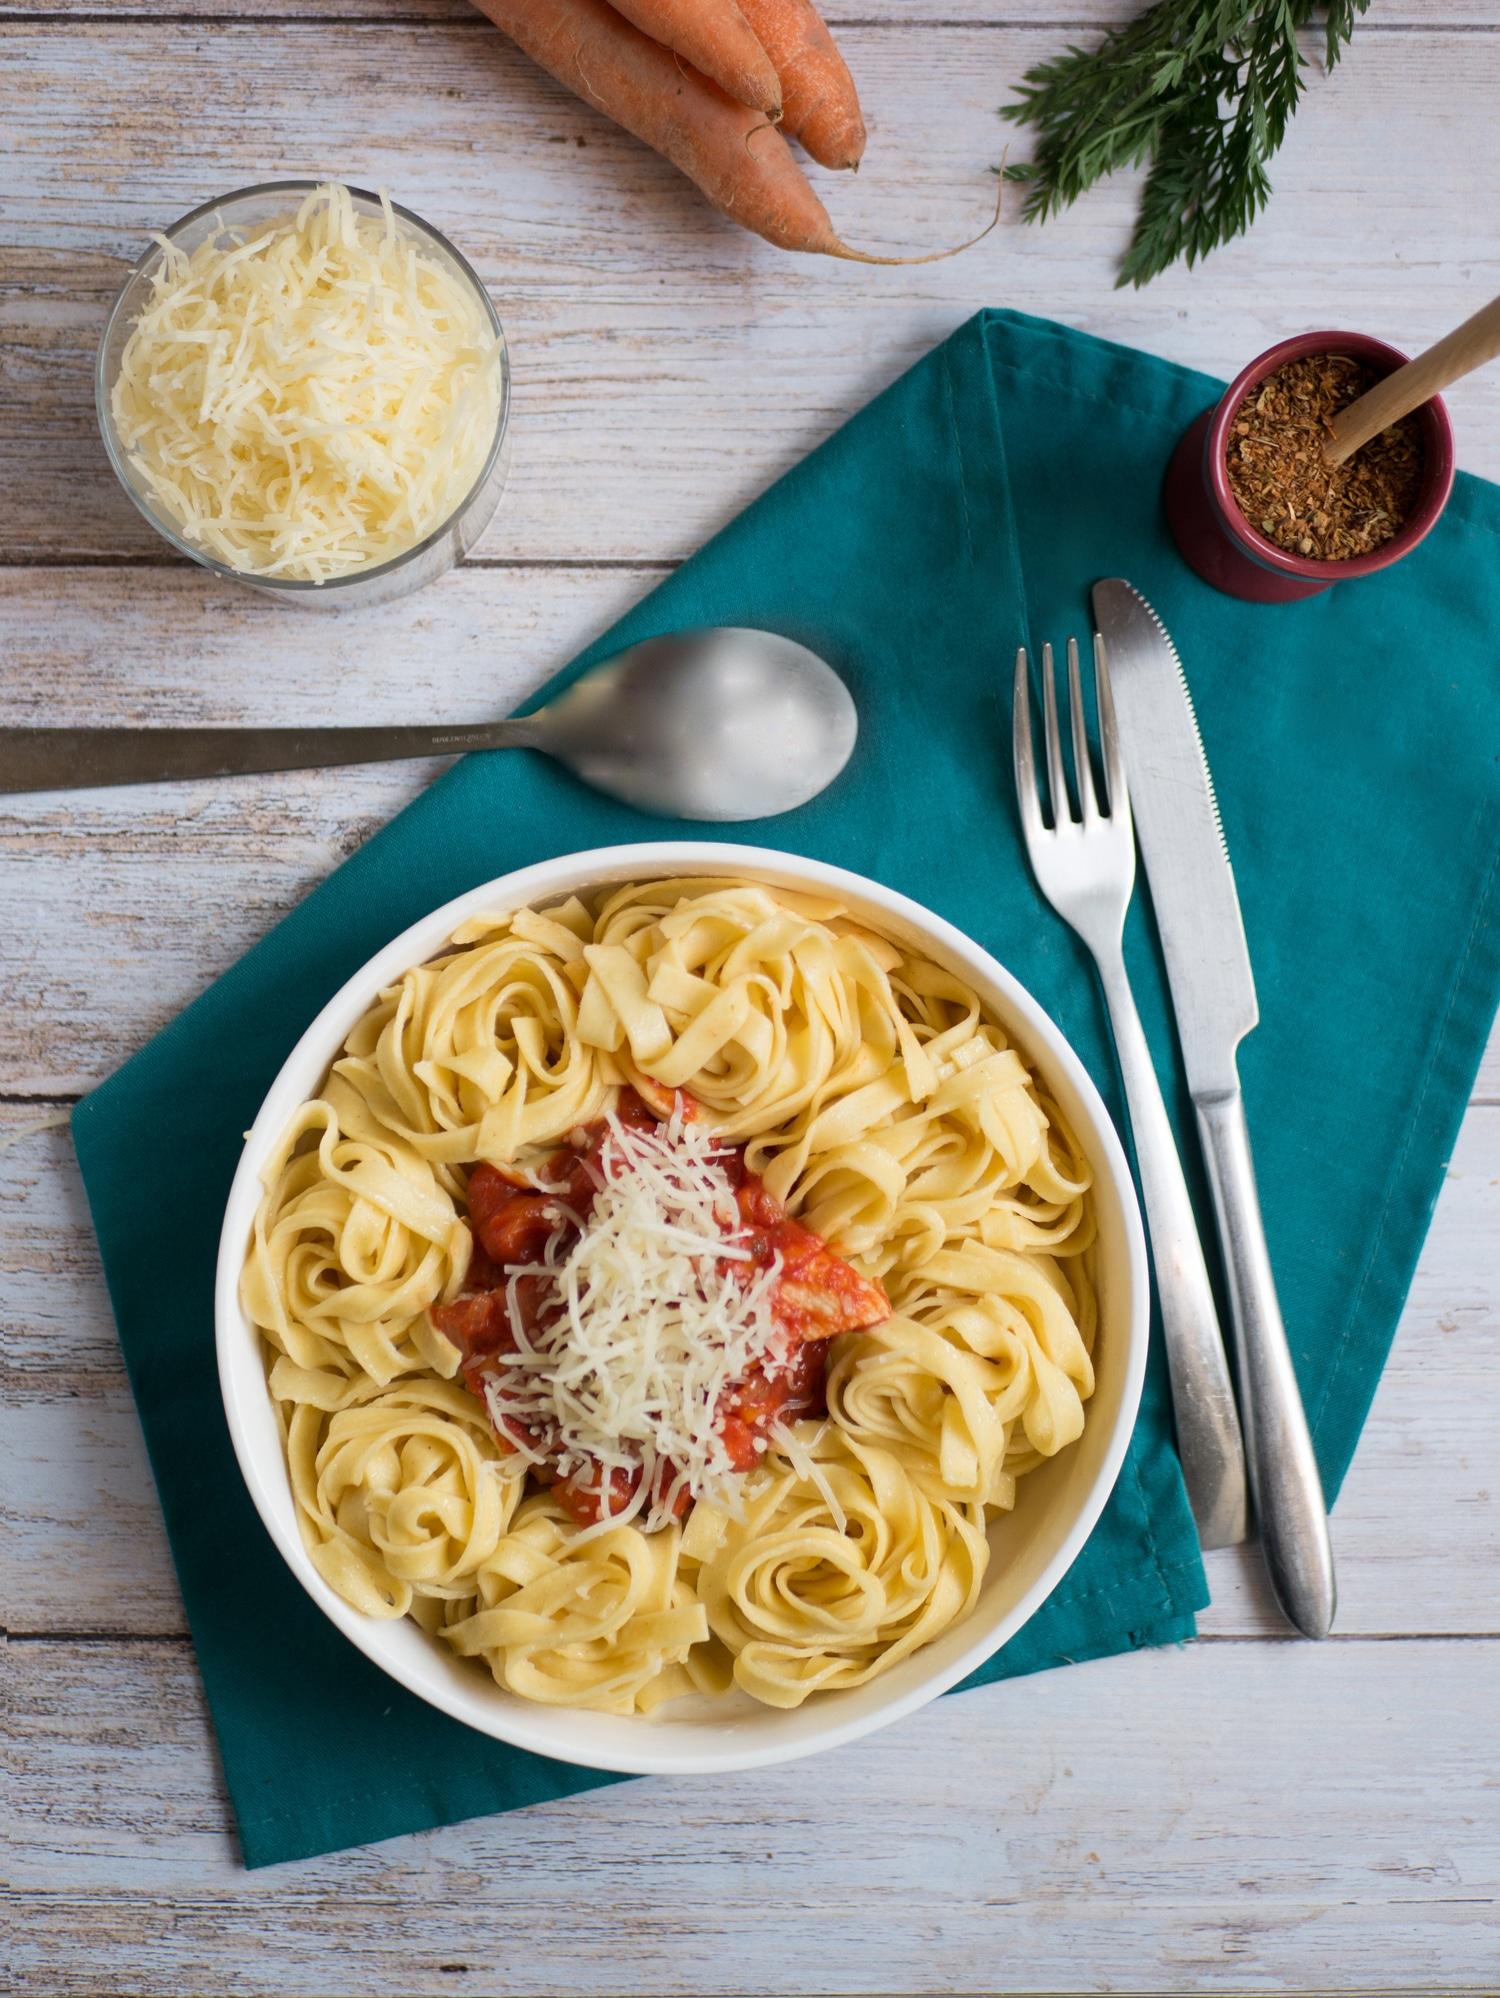 Chicken and tagliatelle with tomato and carrot sauce